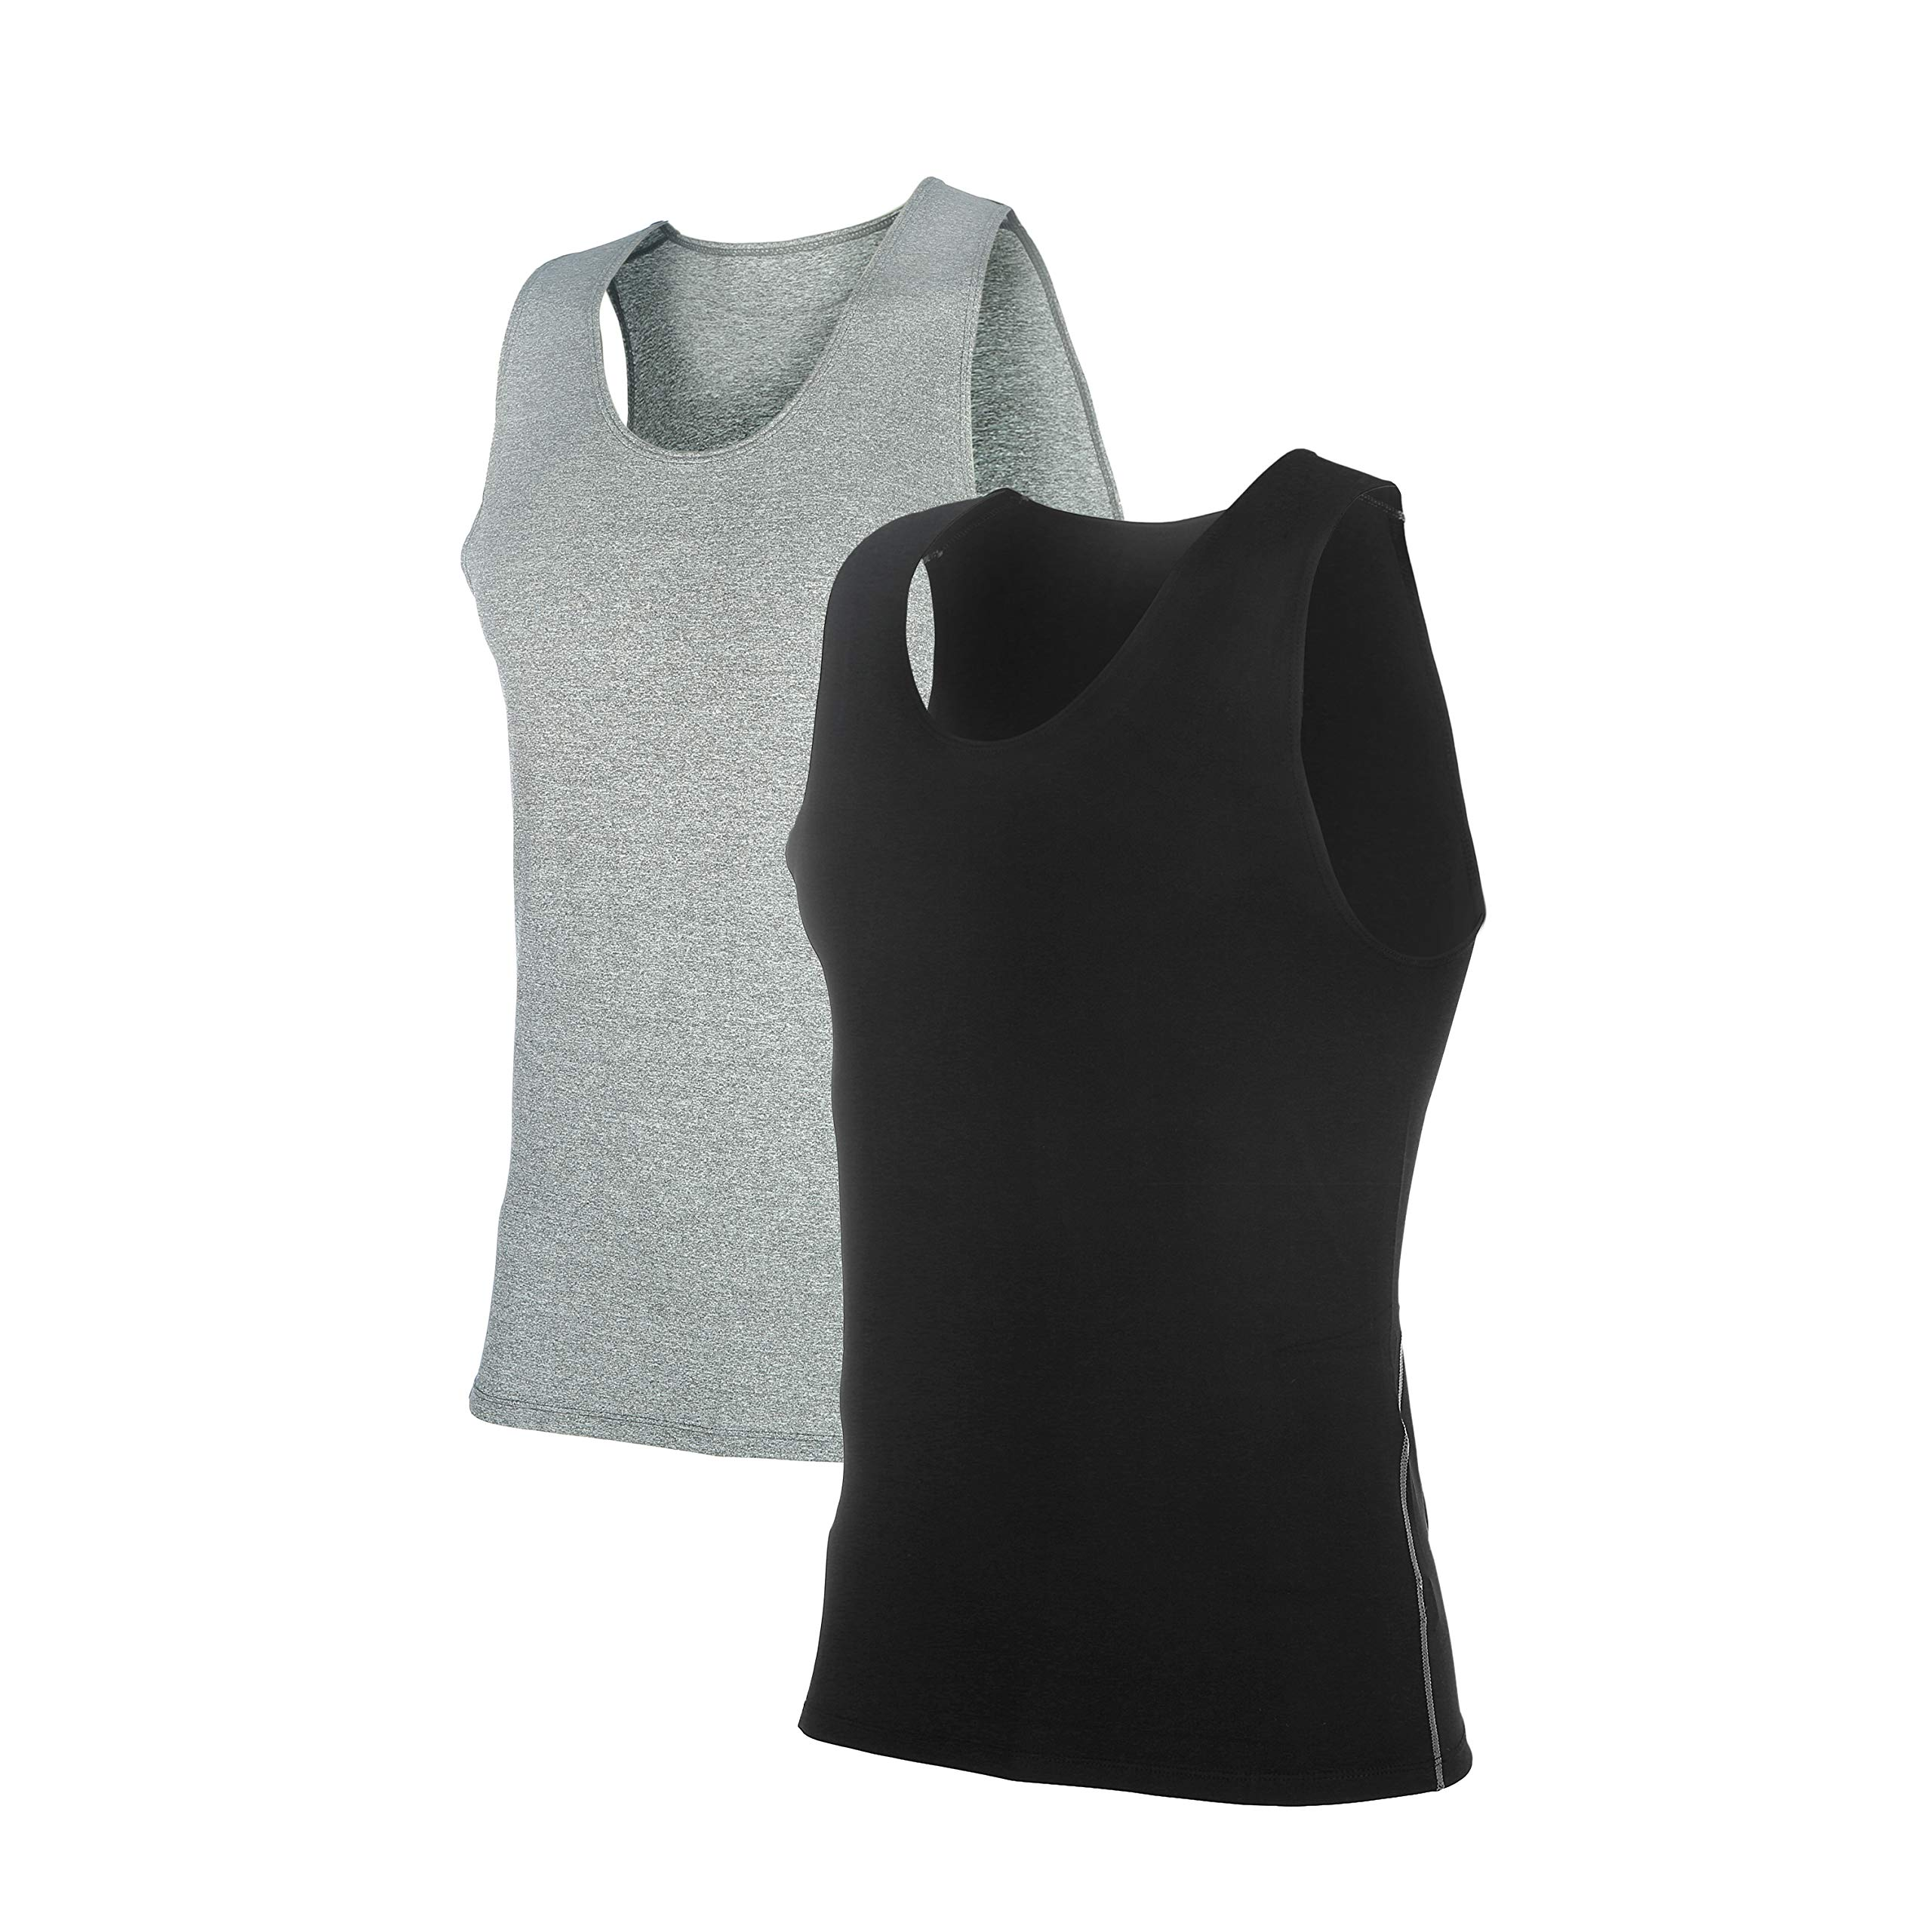 Siboya Men's 2 Pack Sleeveless Muscle Tank Top Athletic Cool Dry Compression Base Layer (Black1,Gray1, L)